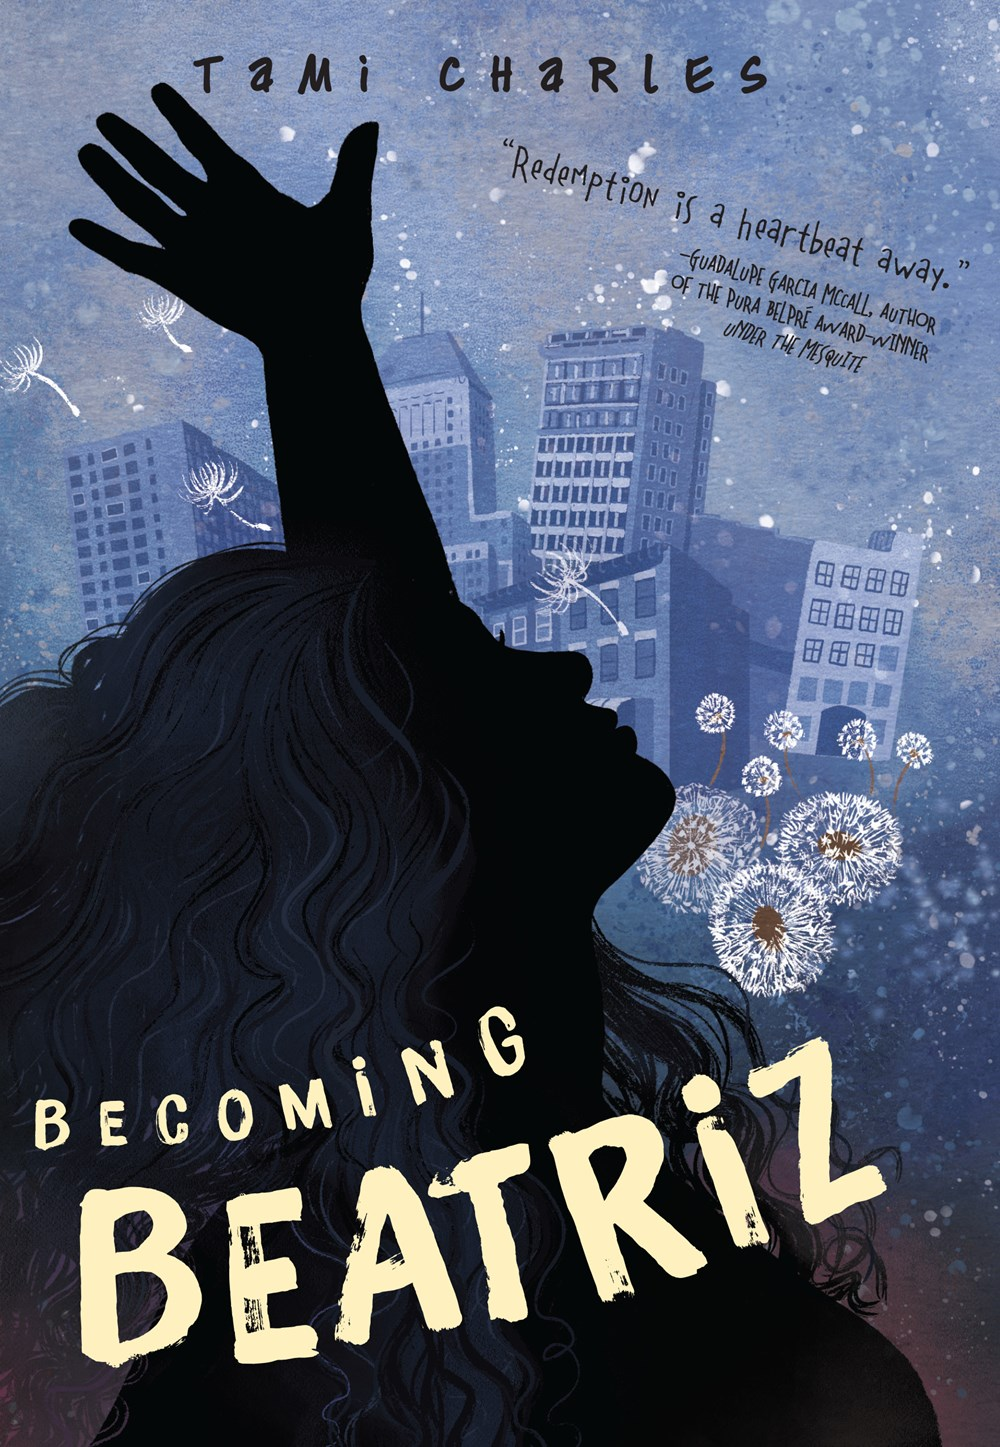 Review of Becoming Beatriz